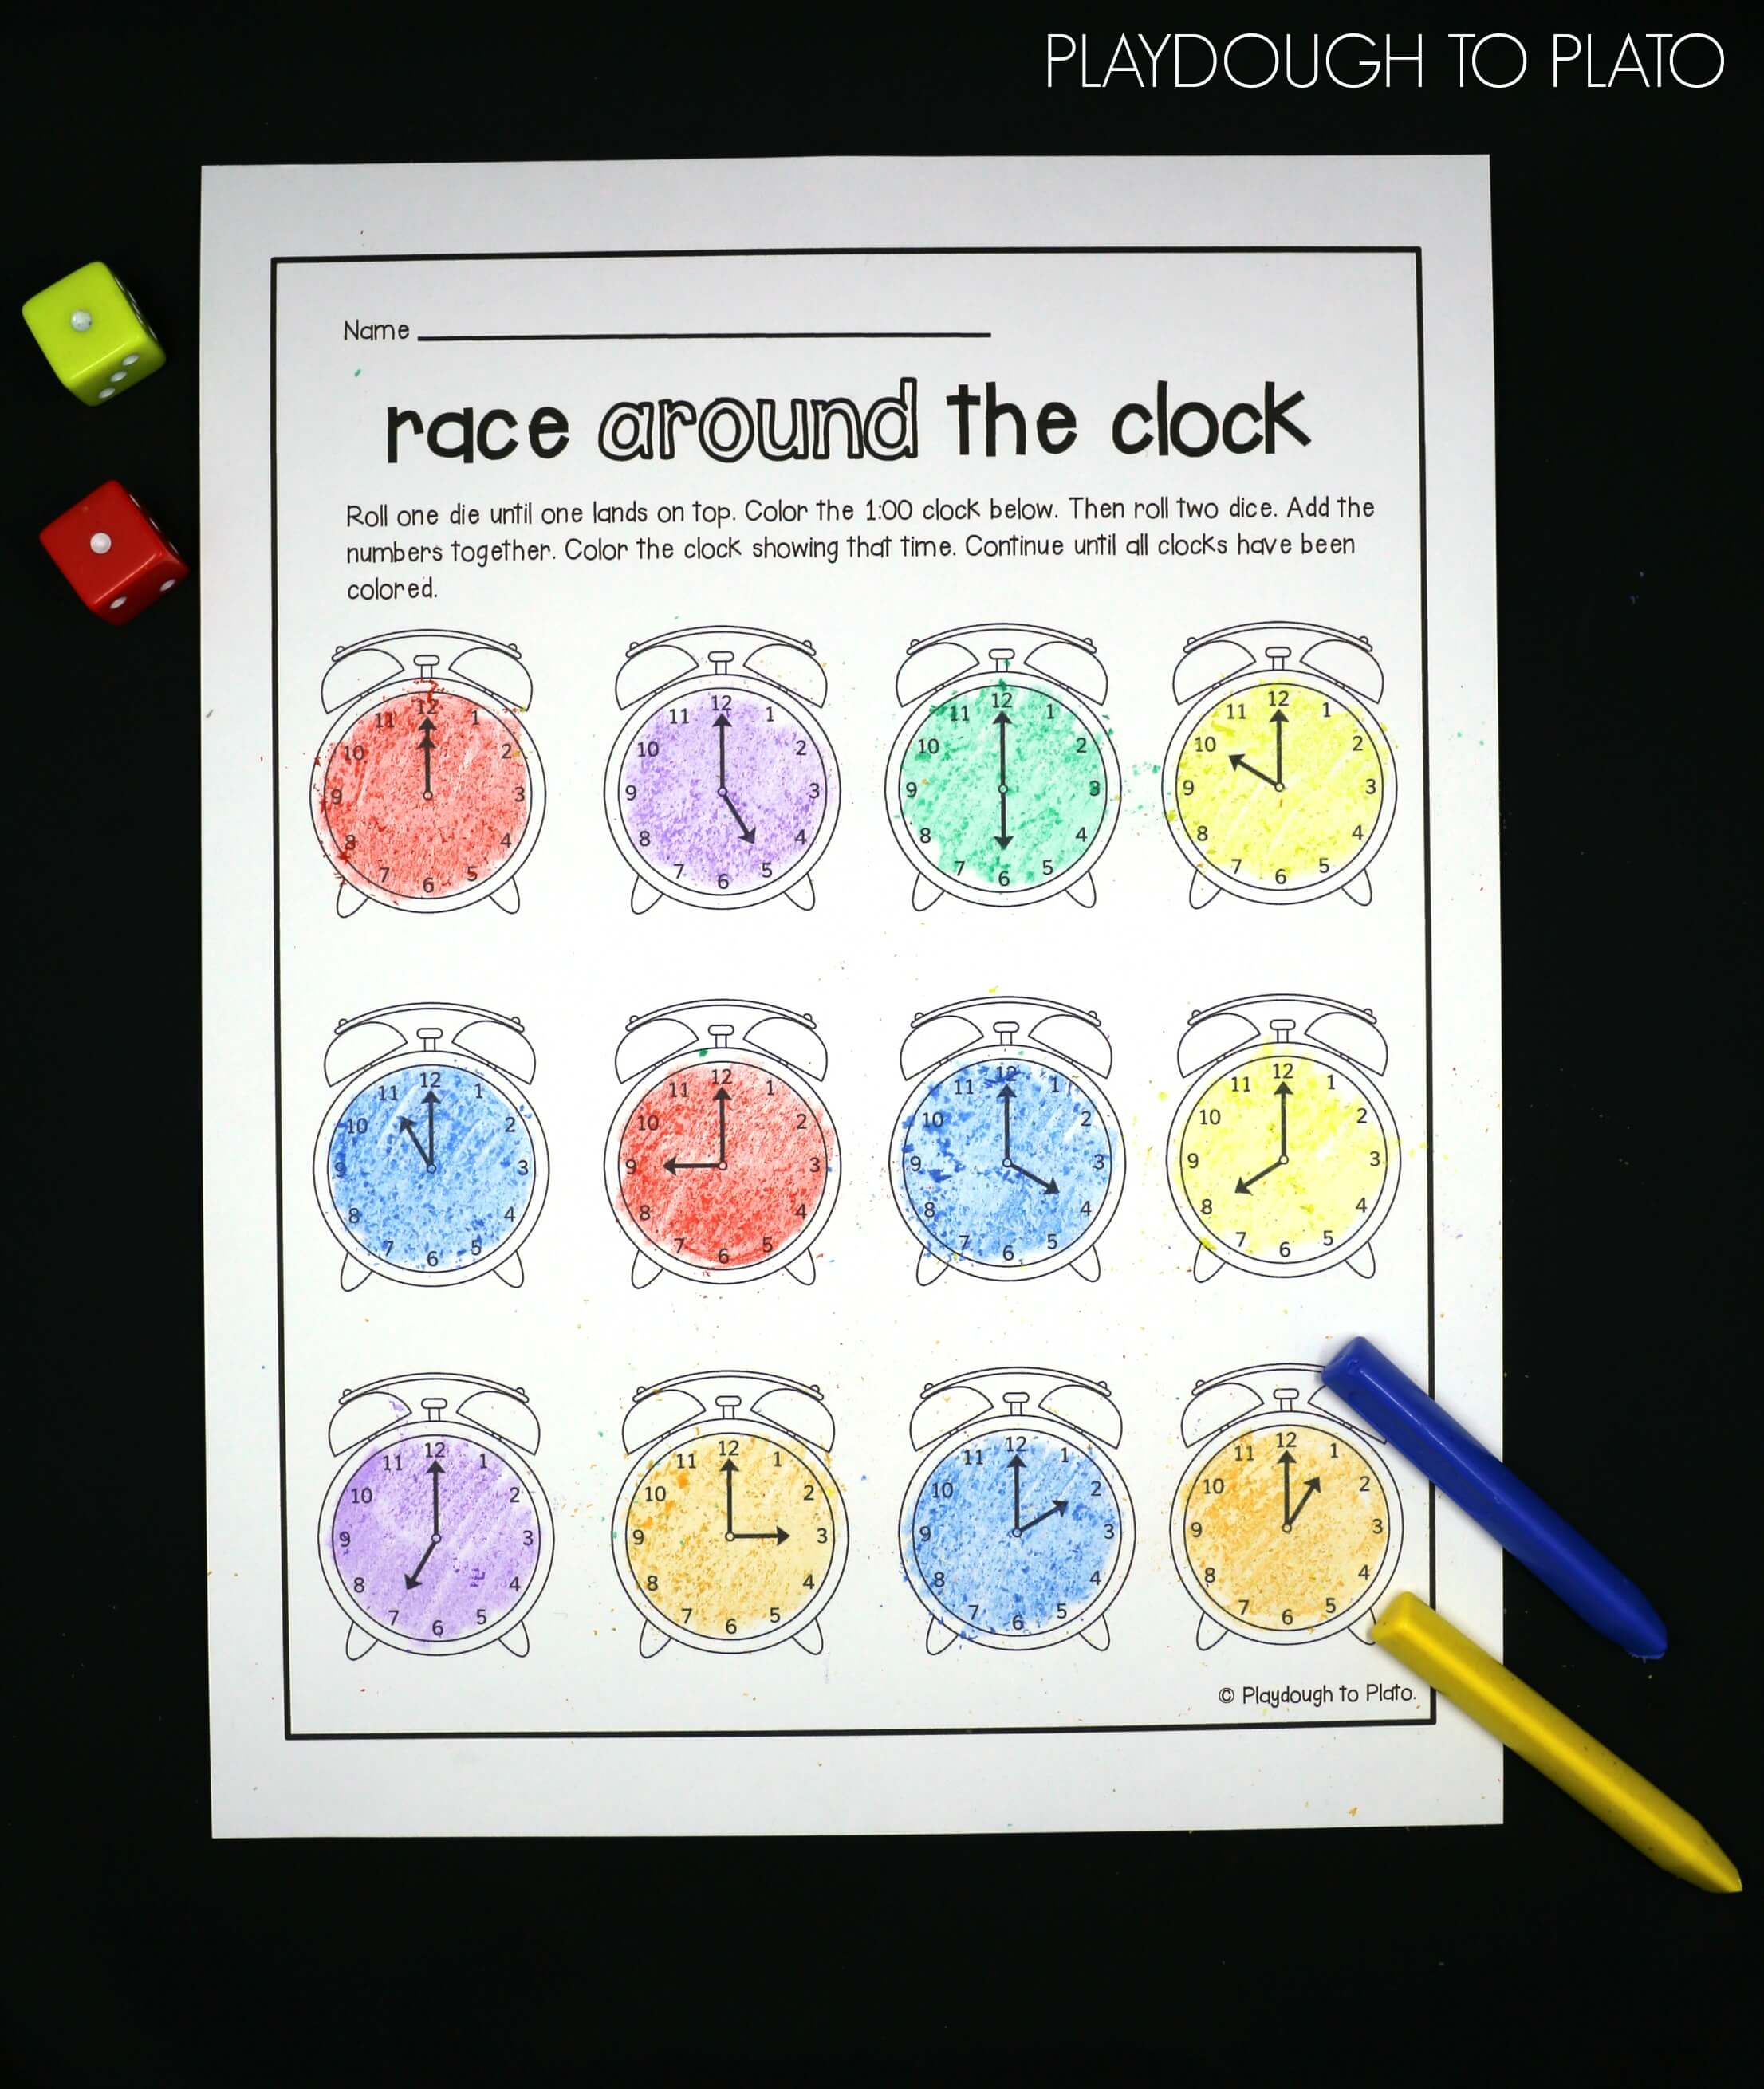 telling time activity pack playdough to plato